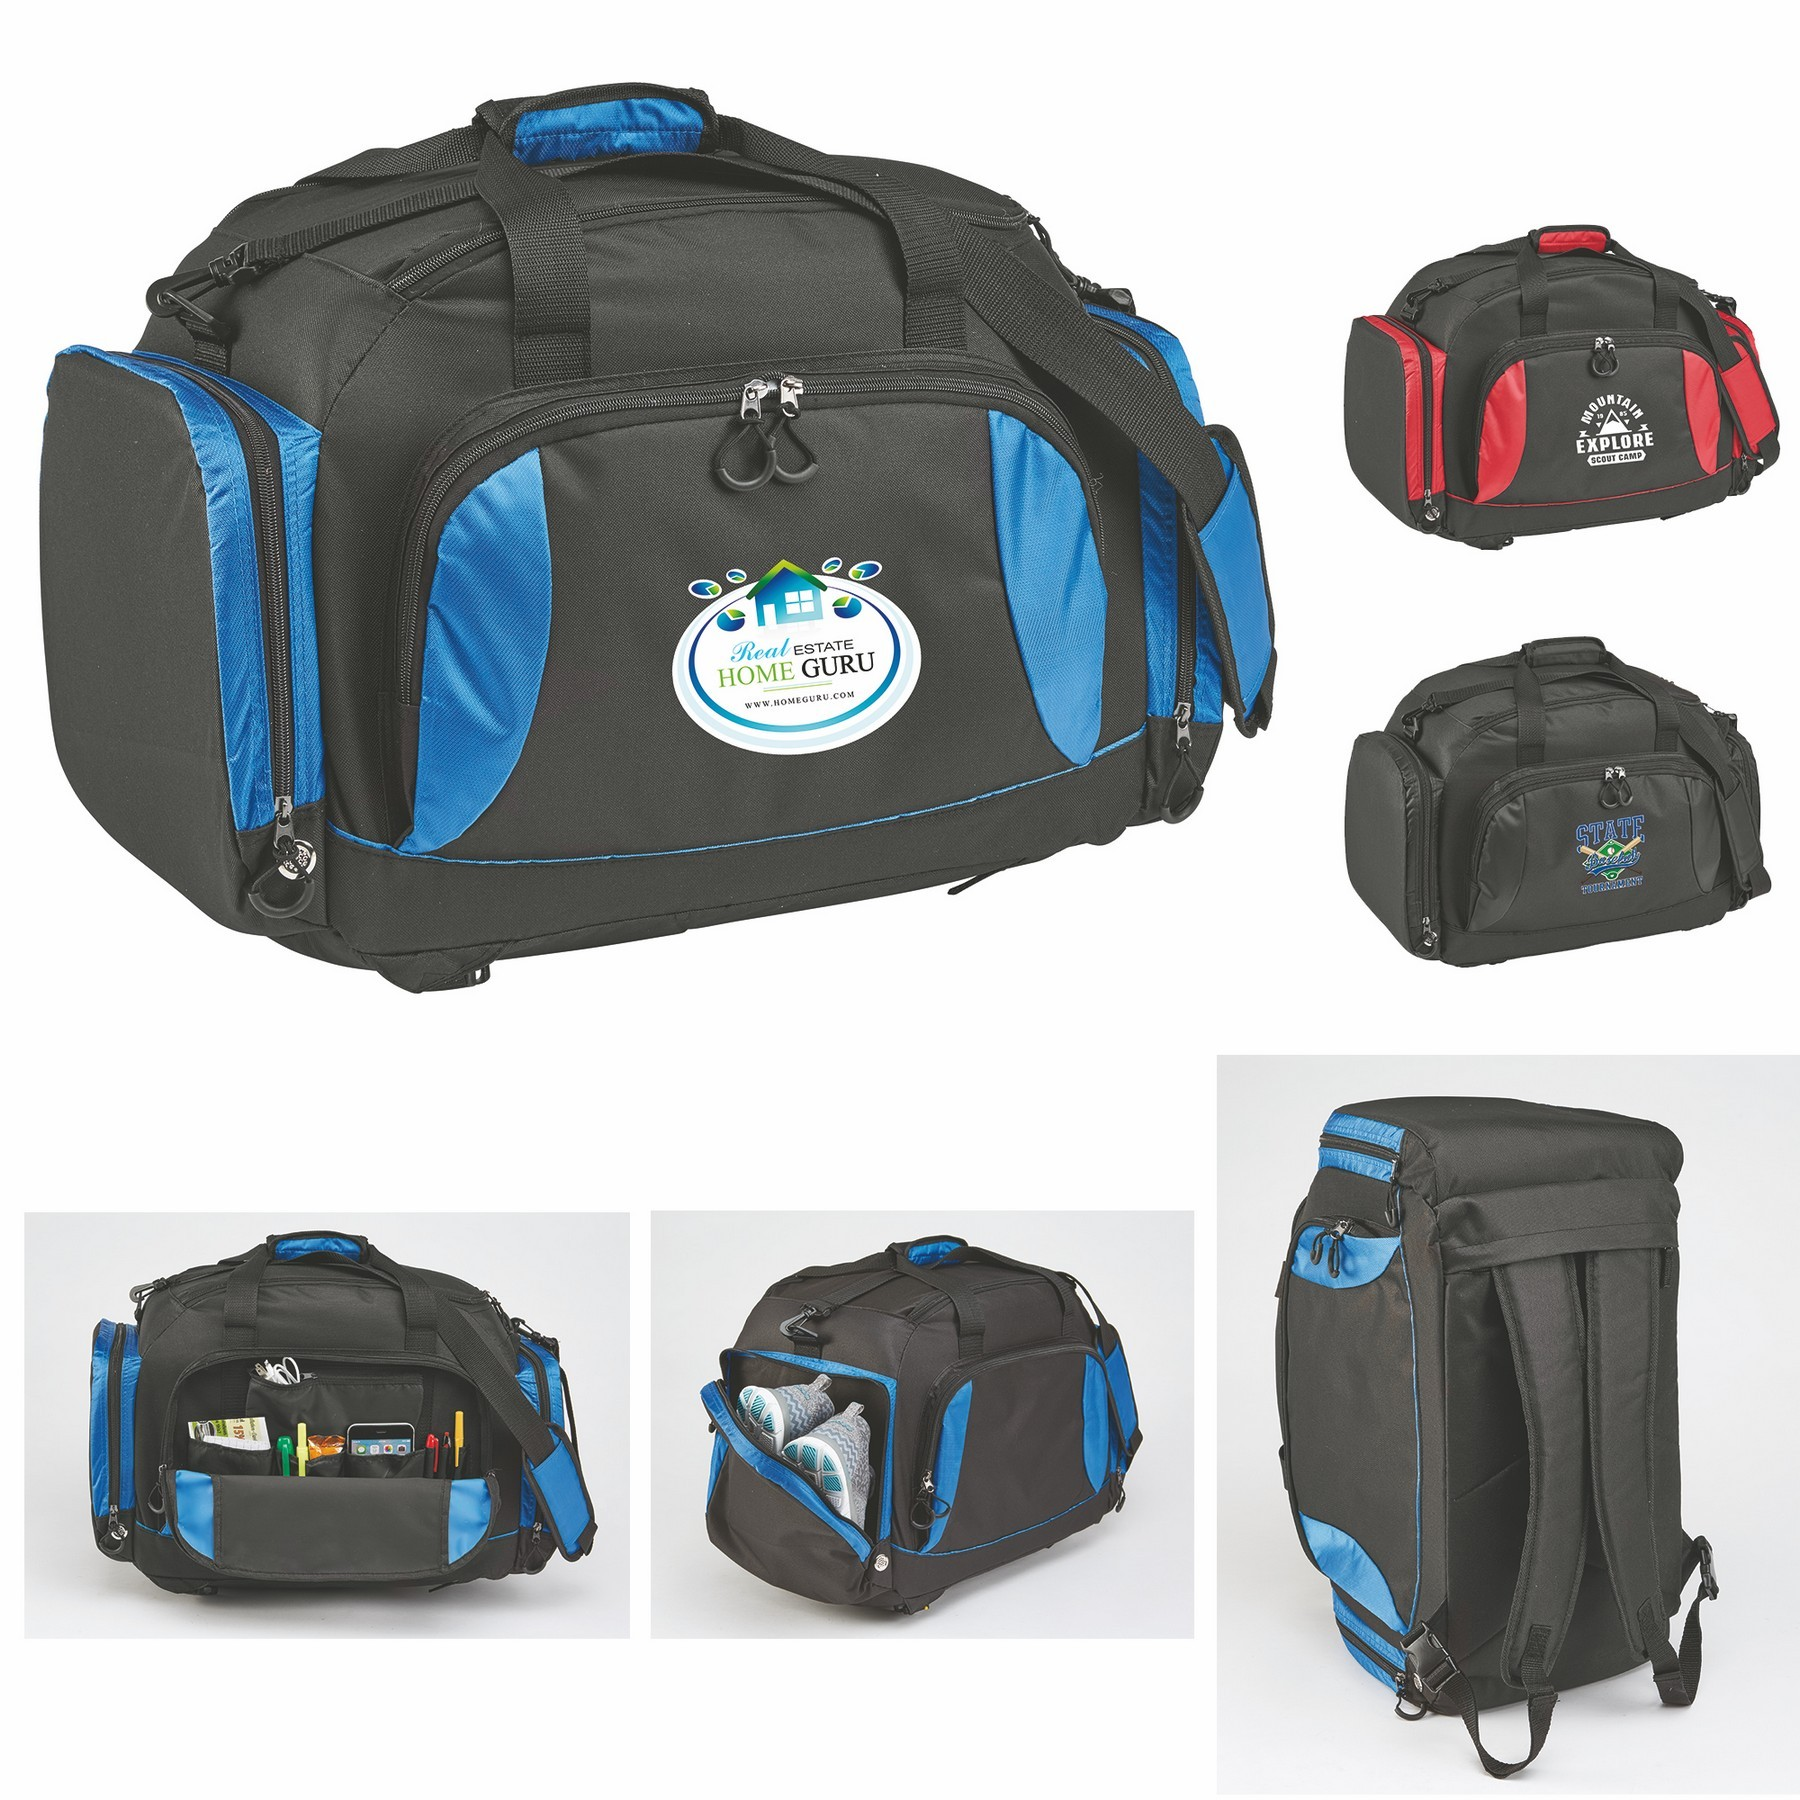 Excursion Backpack Duffel Bag